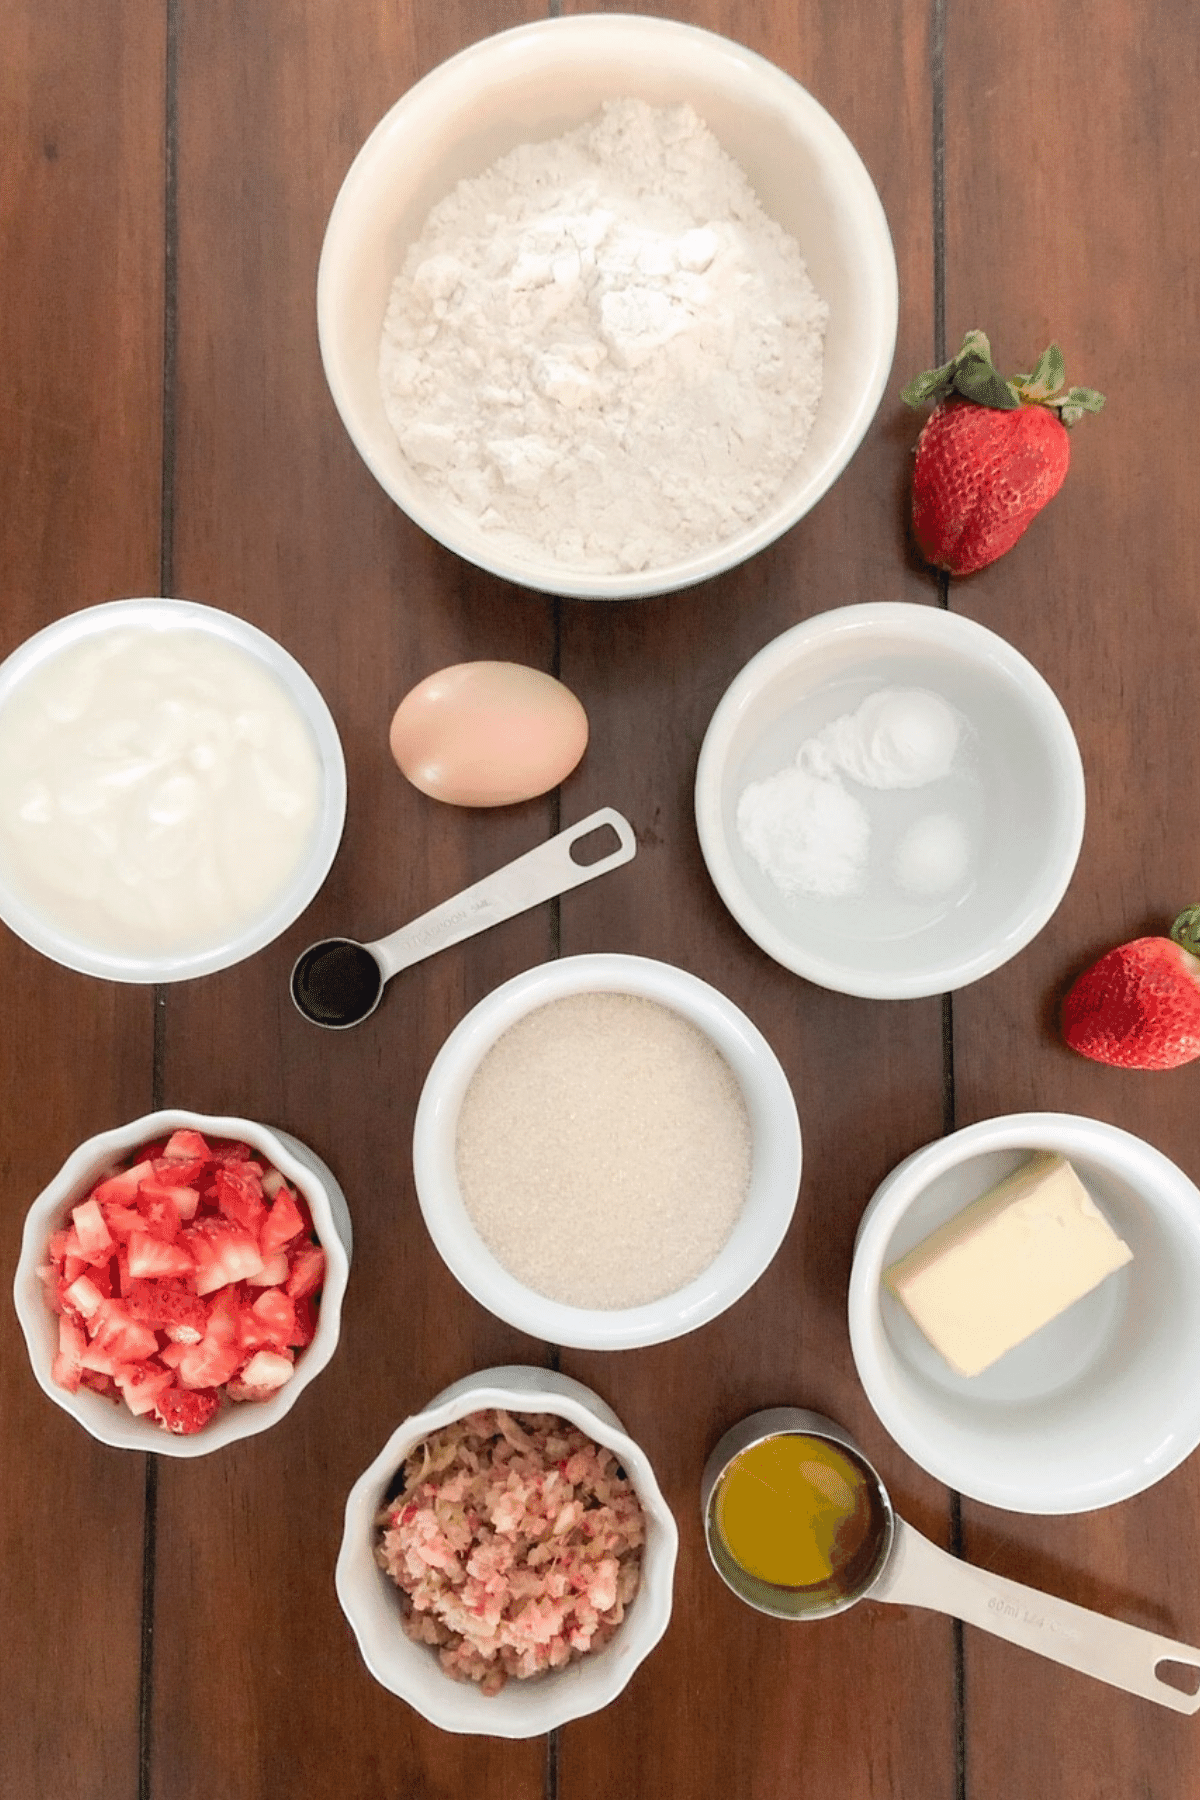 Ingredients for strawberry rhubarb muffins in measuring cups on a table